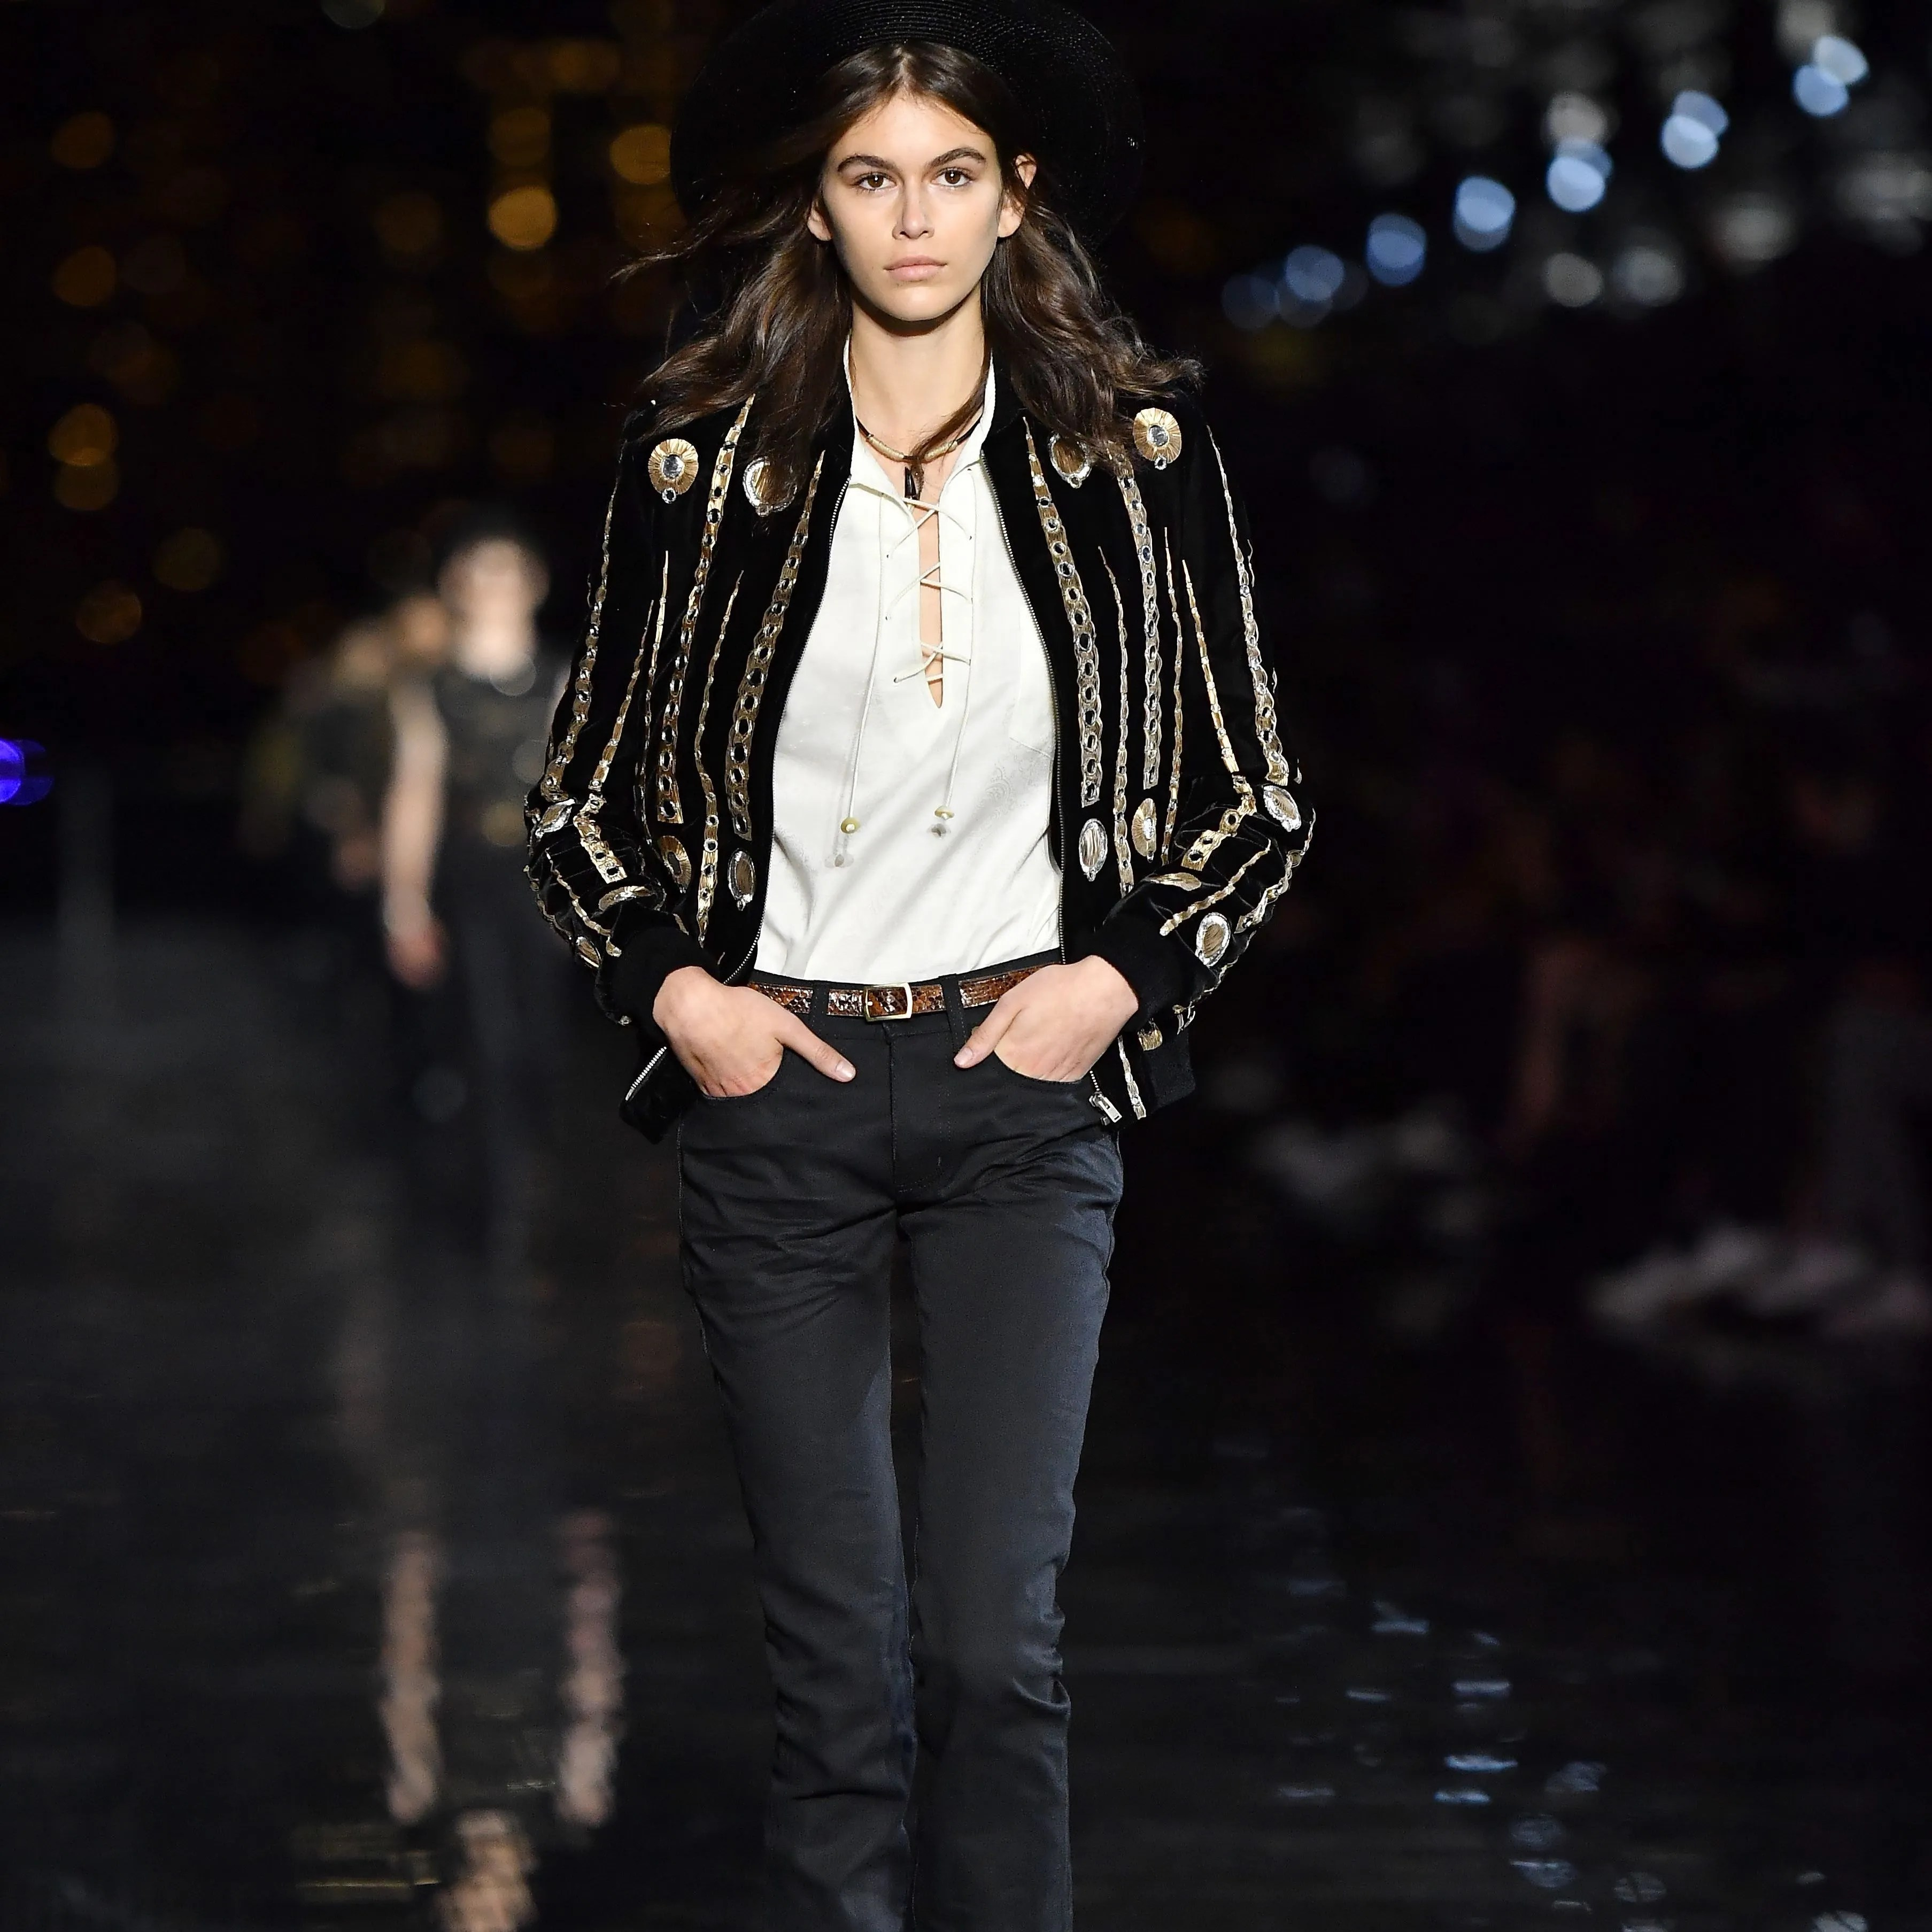 94dcd8a9dfbb2 Kaia Gerber opened up the Saint Laurent Men's Spring/Summer 2019 collection  wearing a bold jacket trimmed in gold, proving that a killer jacket knows  no ...